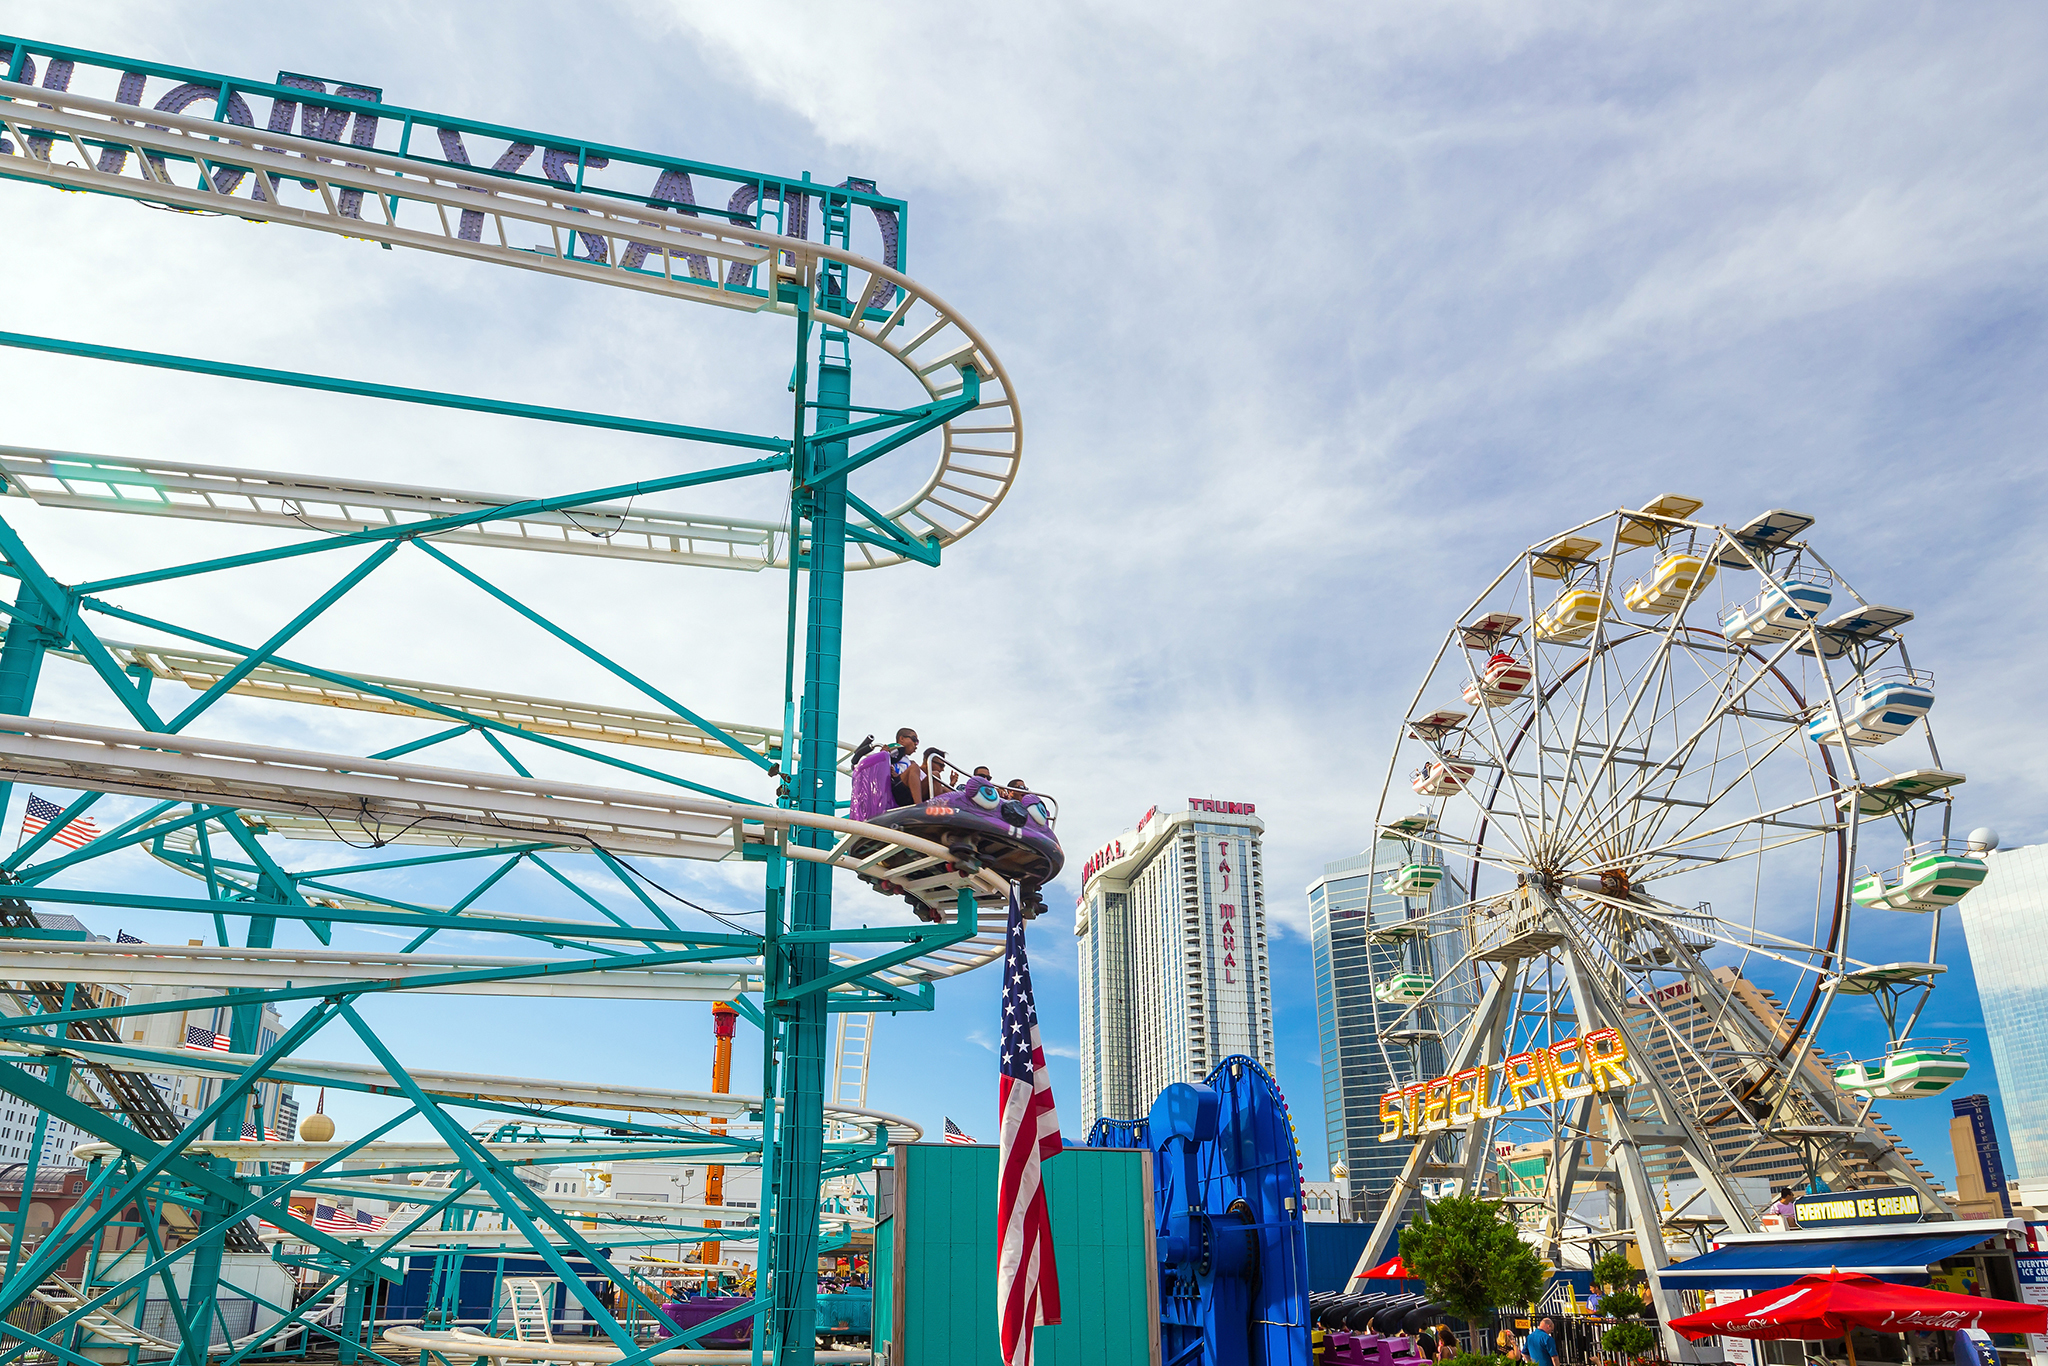 Rides and games on Steel Pier